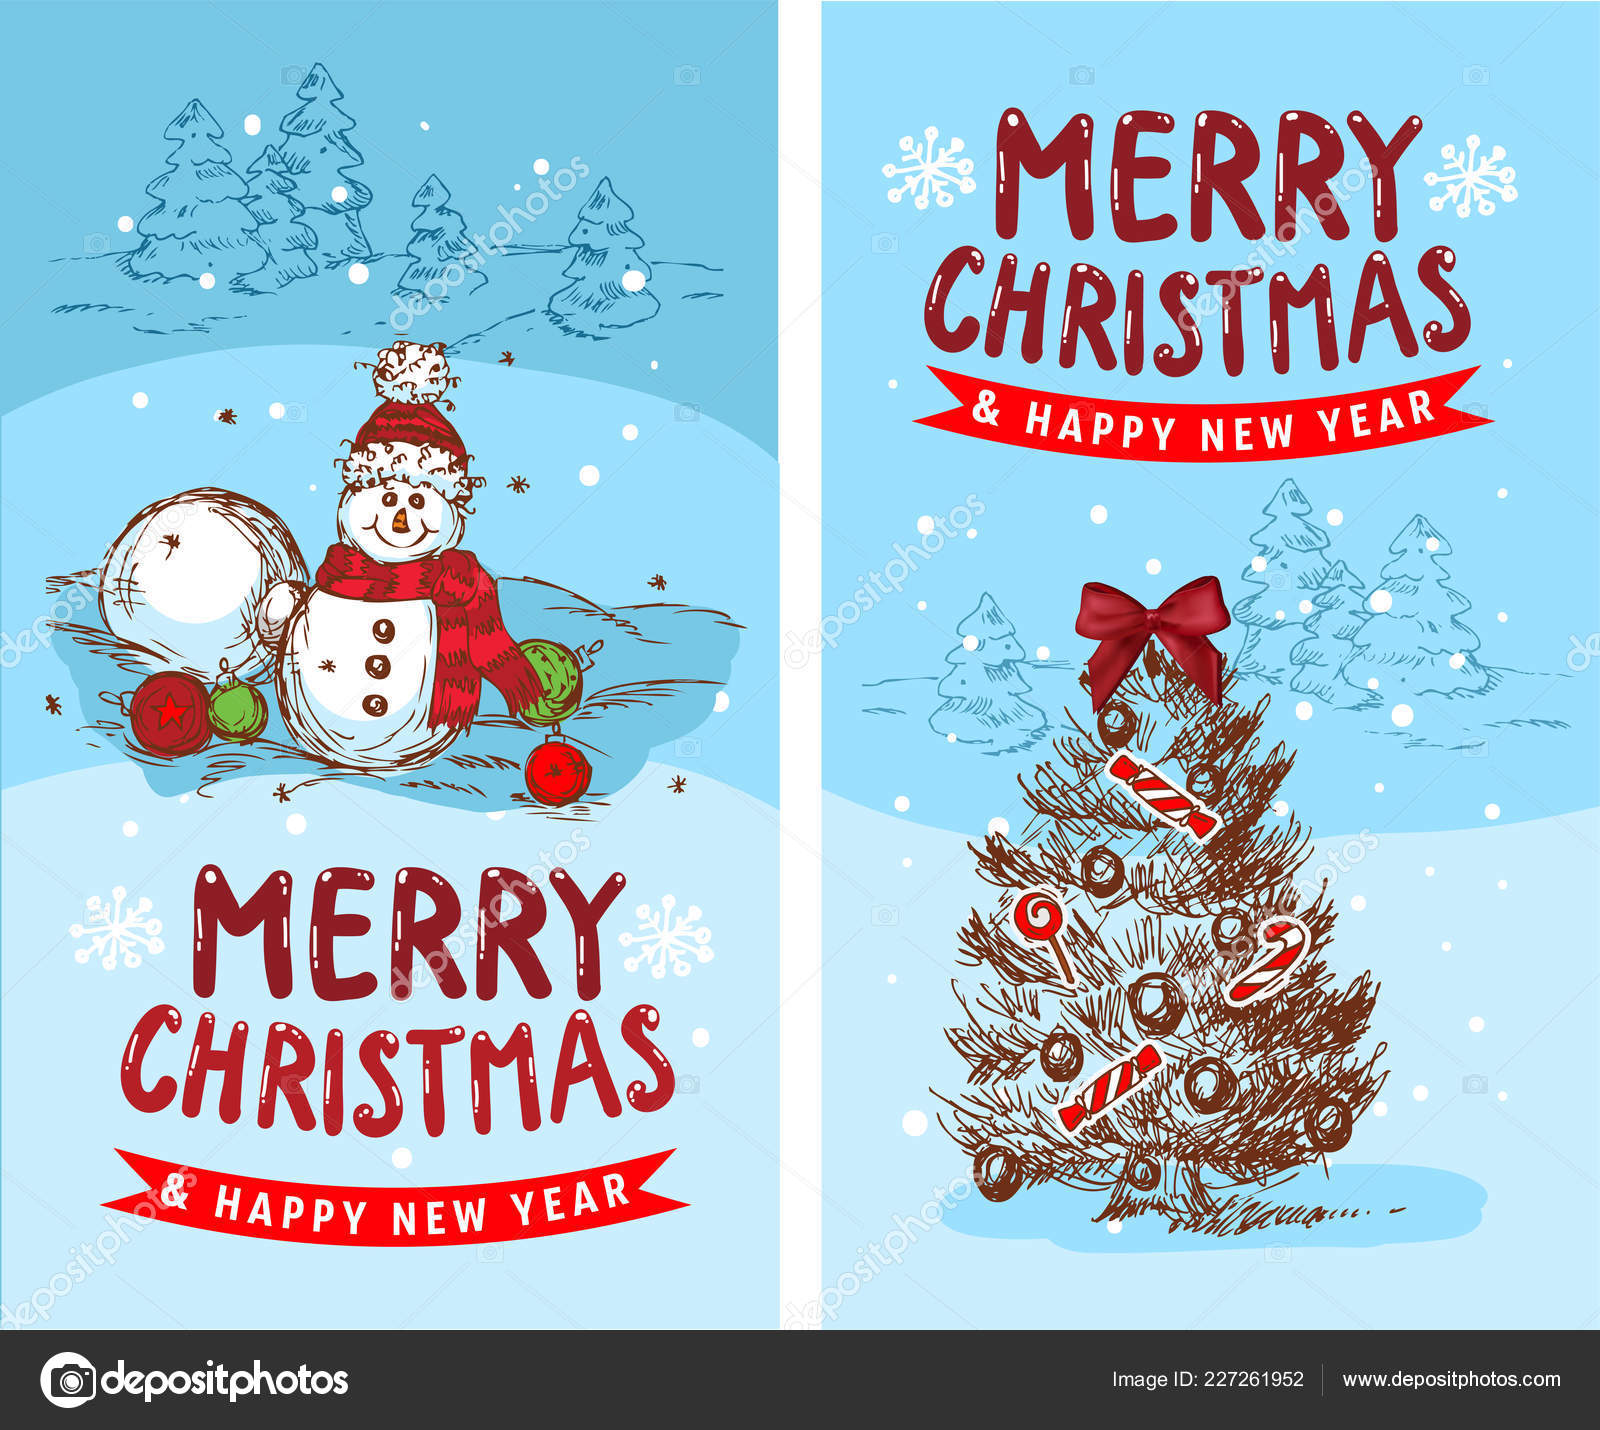 Merry Christmas Funny Images.Images Merry Christmas And Happy New Year Card Merry